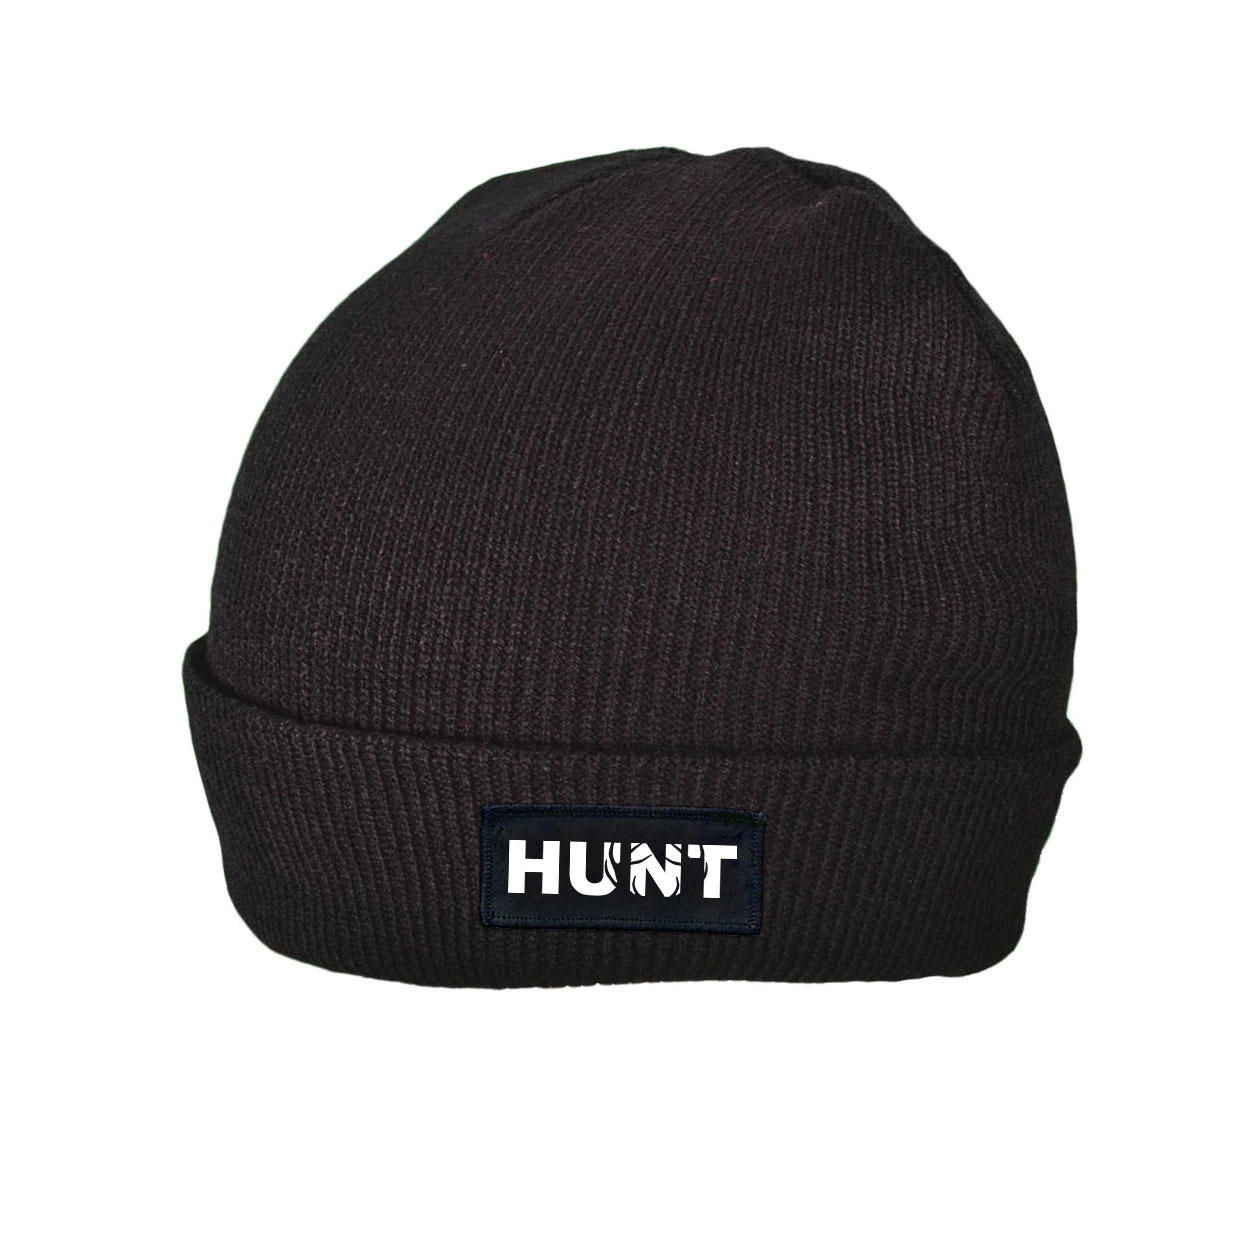 Hunt Rack Logo Night Out Woven Patch Skully Youth Beanie Black (White Logo)